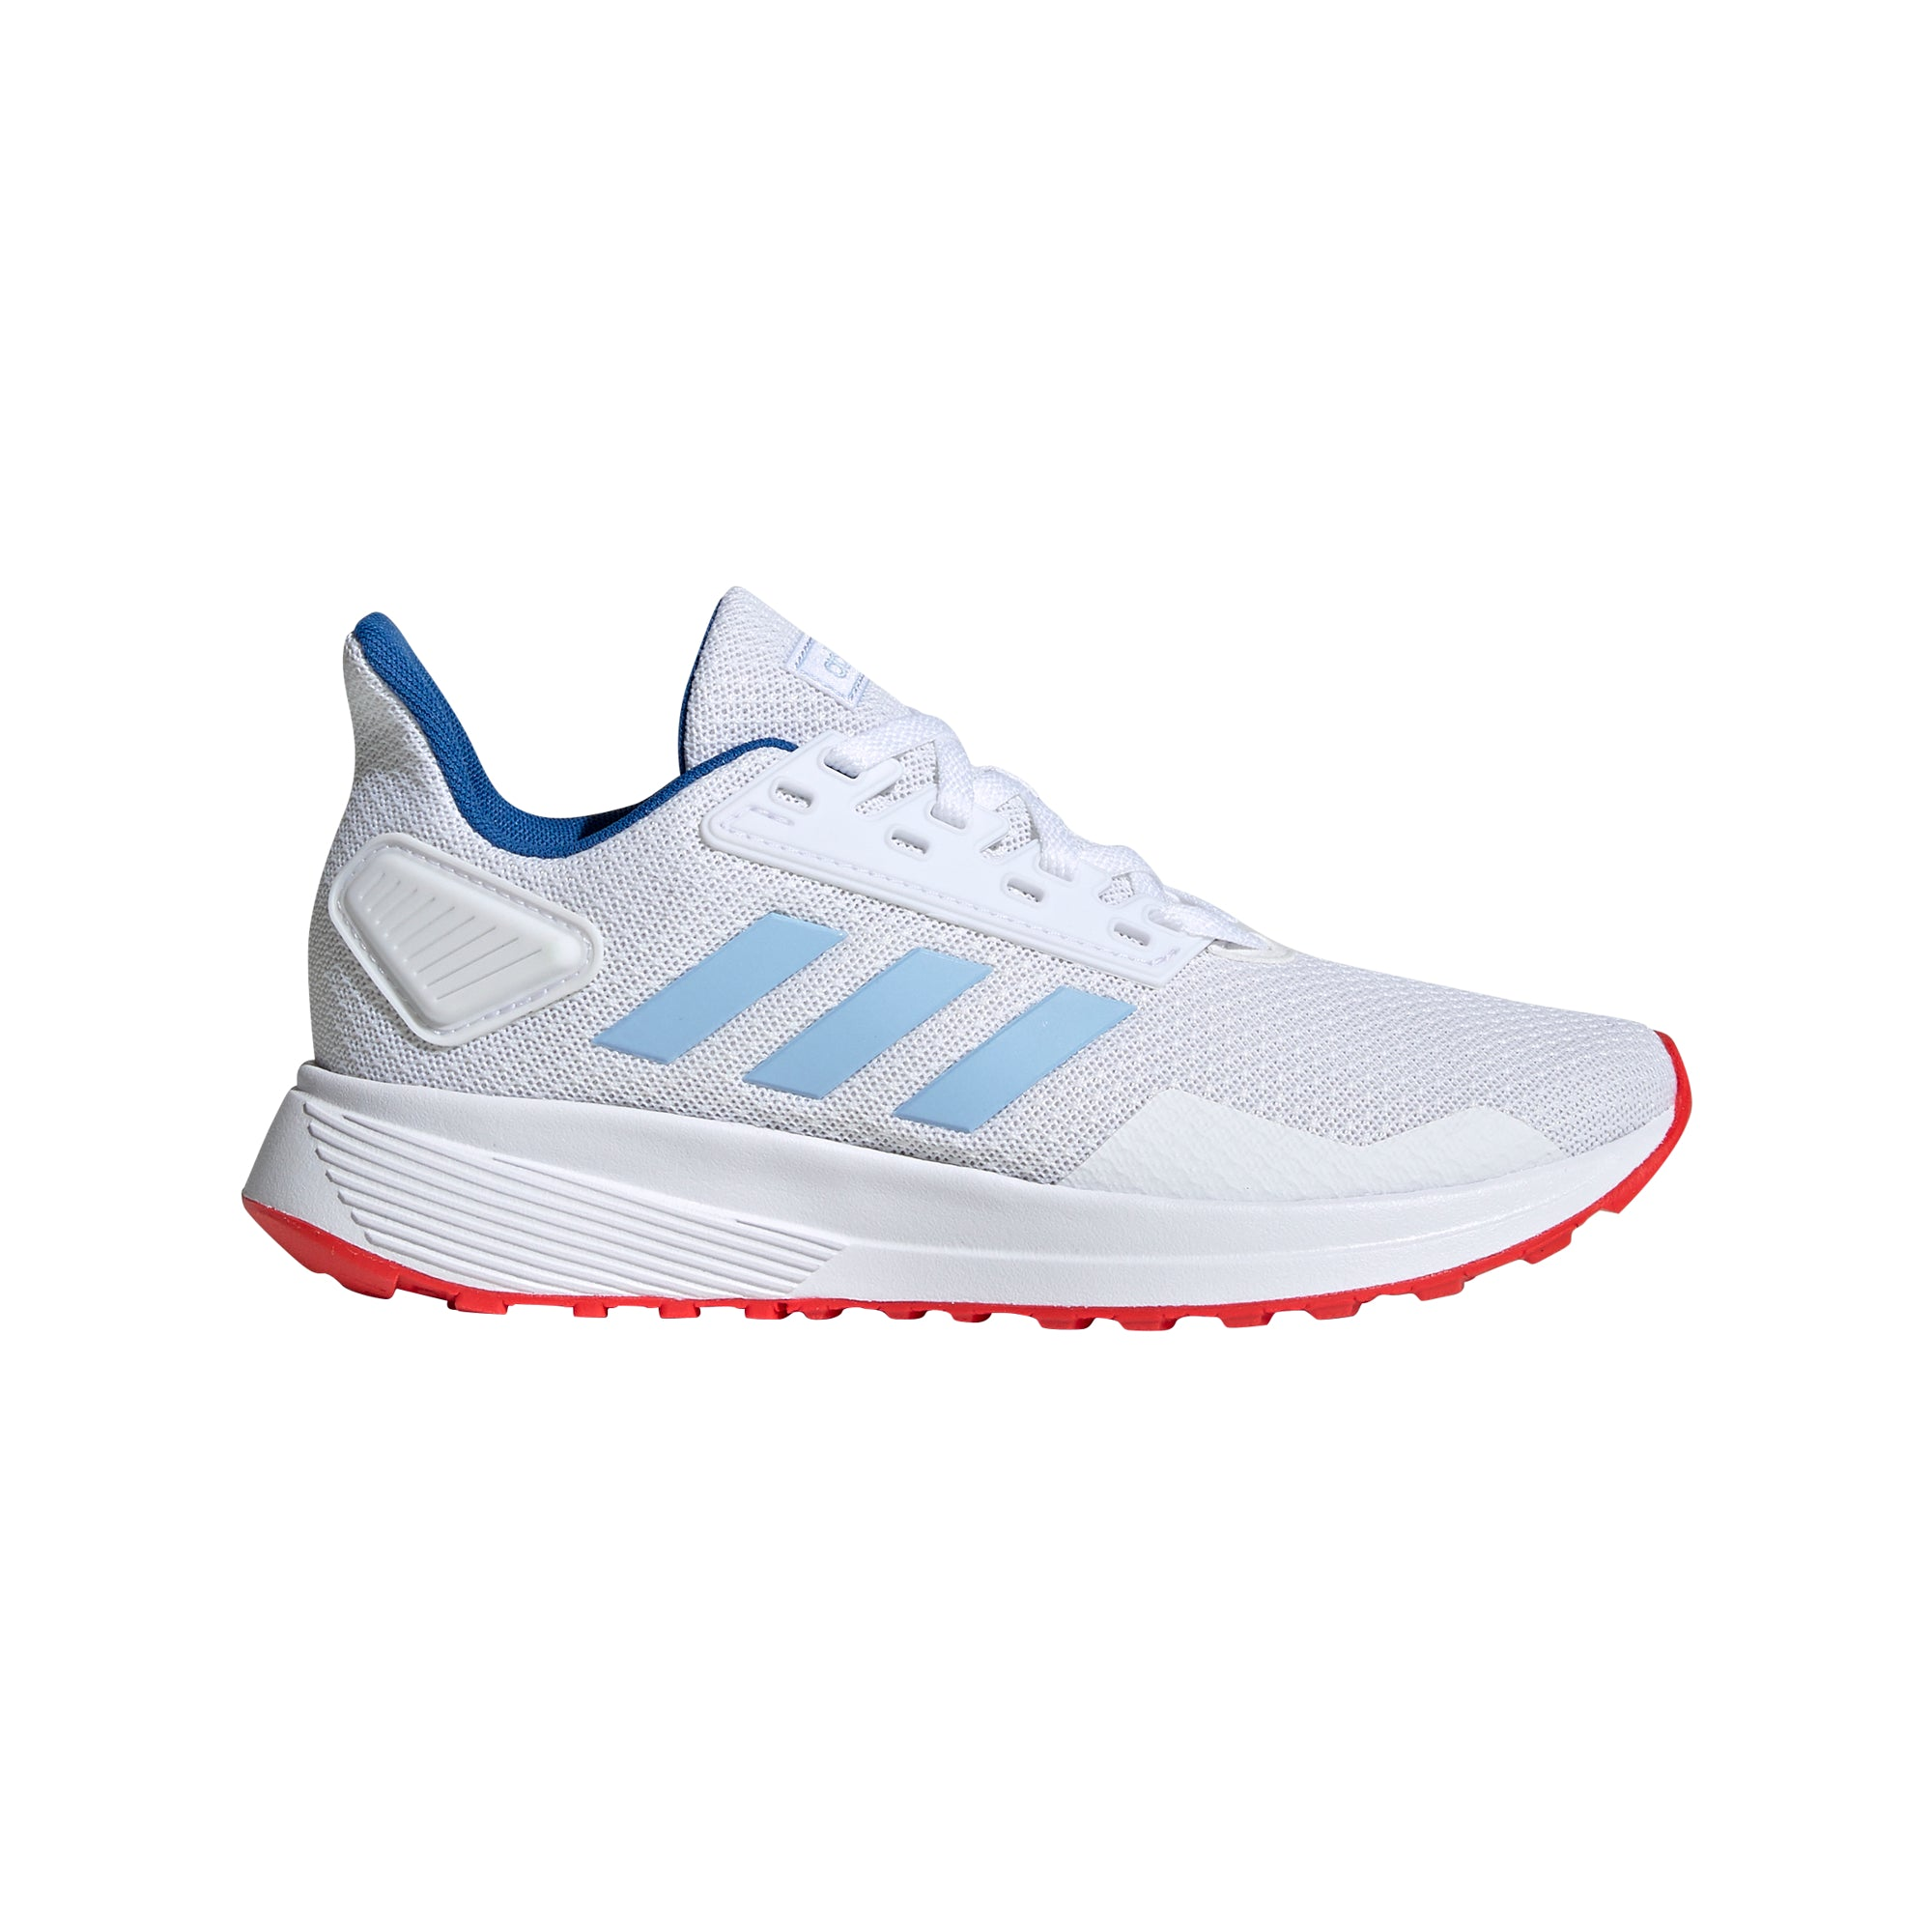 Adidas Kids Duramo 9 - Ftwr White/Glow Blue/Active Red